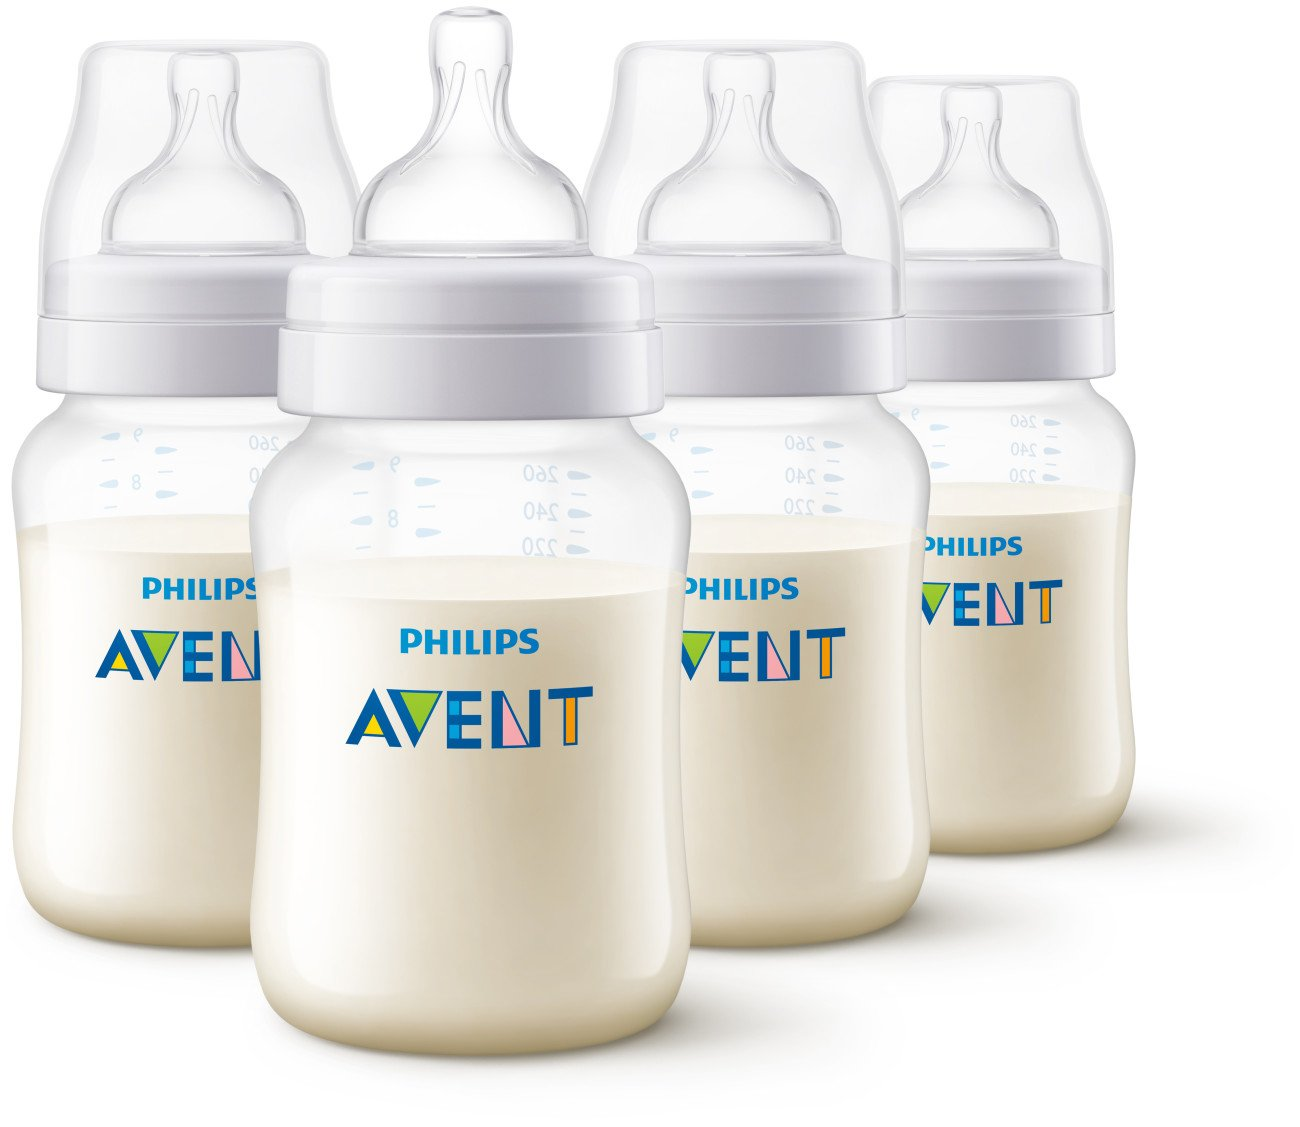 Philips Avent Anti-Colic Baby Bottles Clear, 9oz 4 Piece